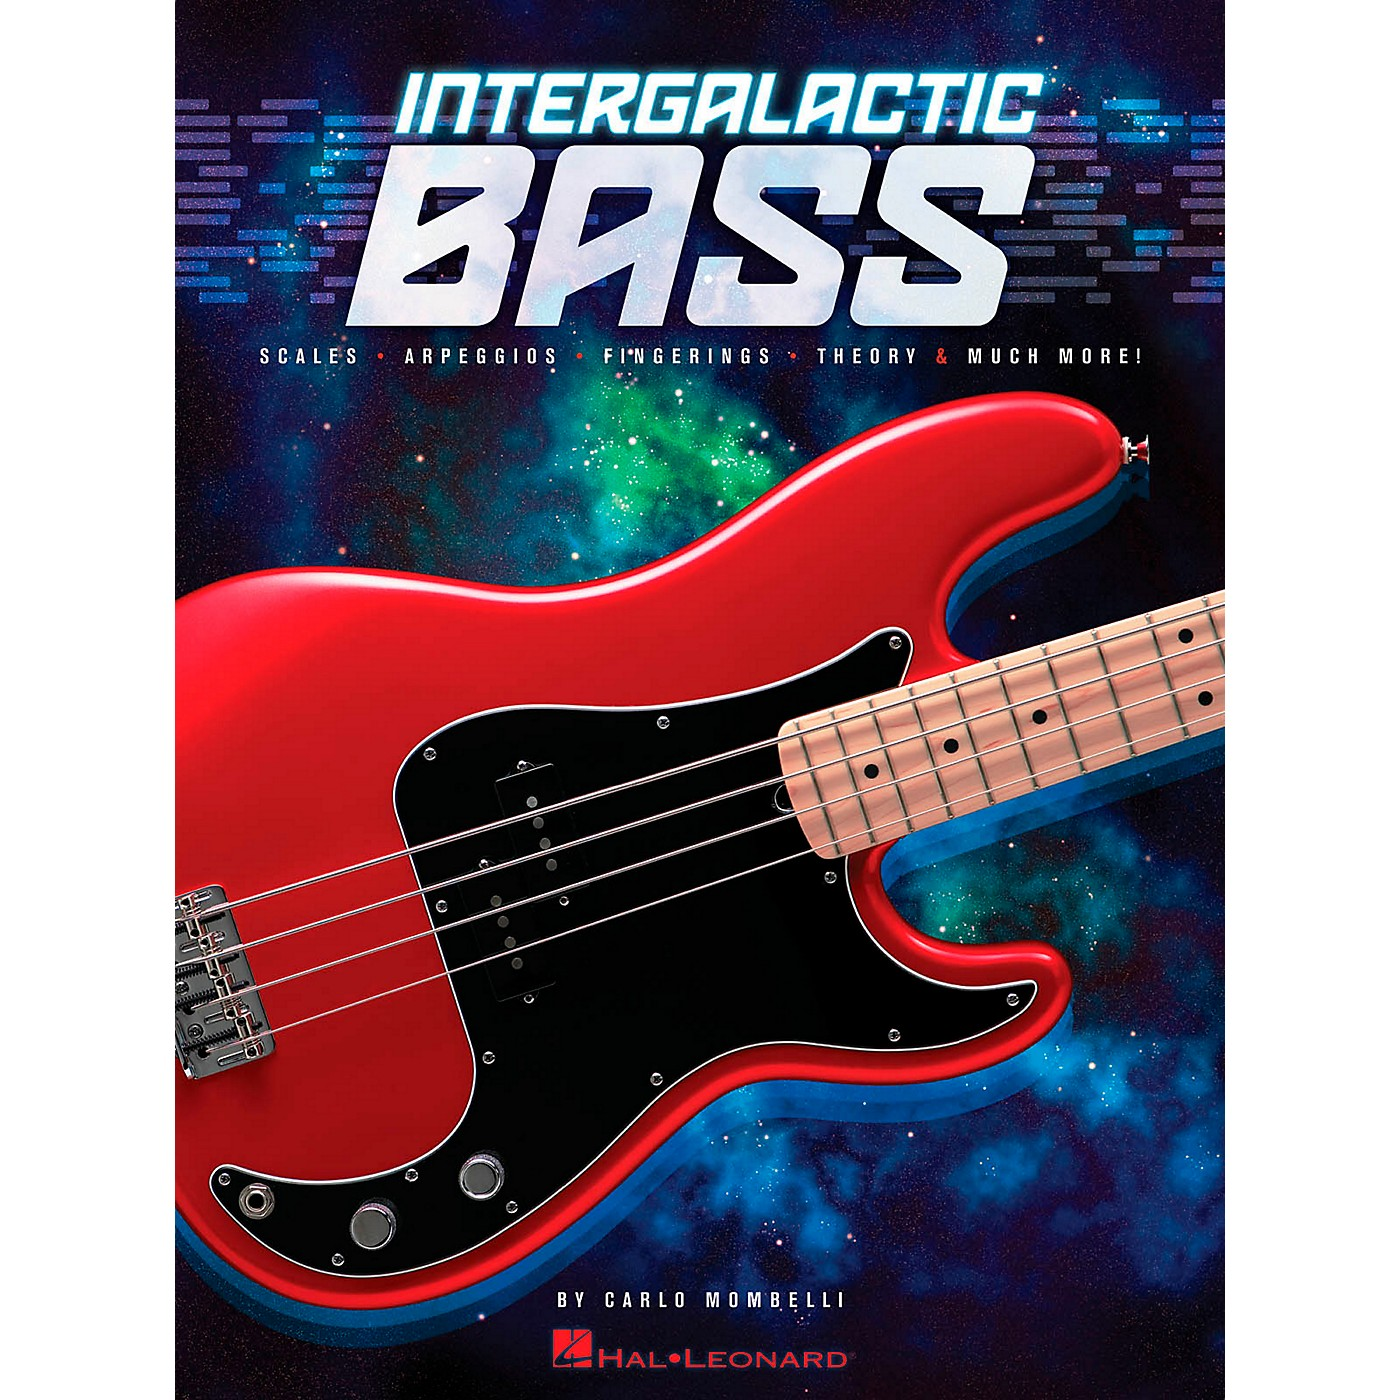 Hal Leonard Intergalactic Bass - Scales, Arpeggios, Fingerings, Theory & Much More! thumbnail